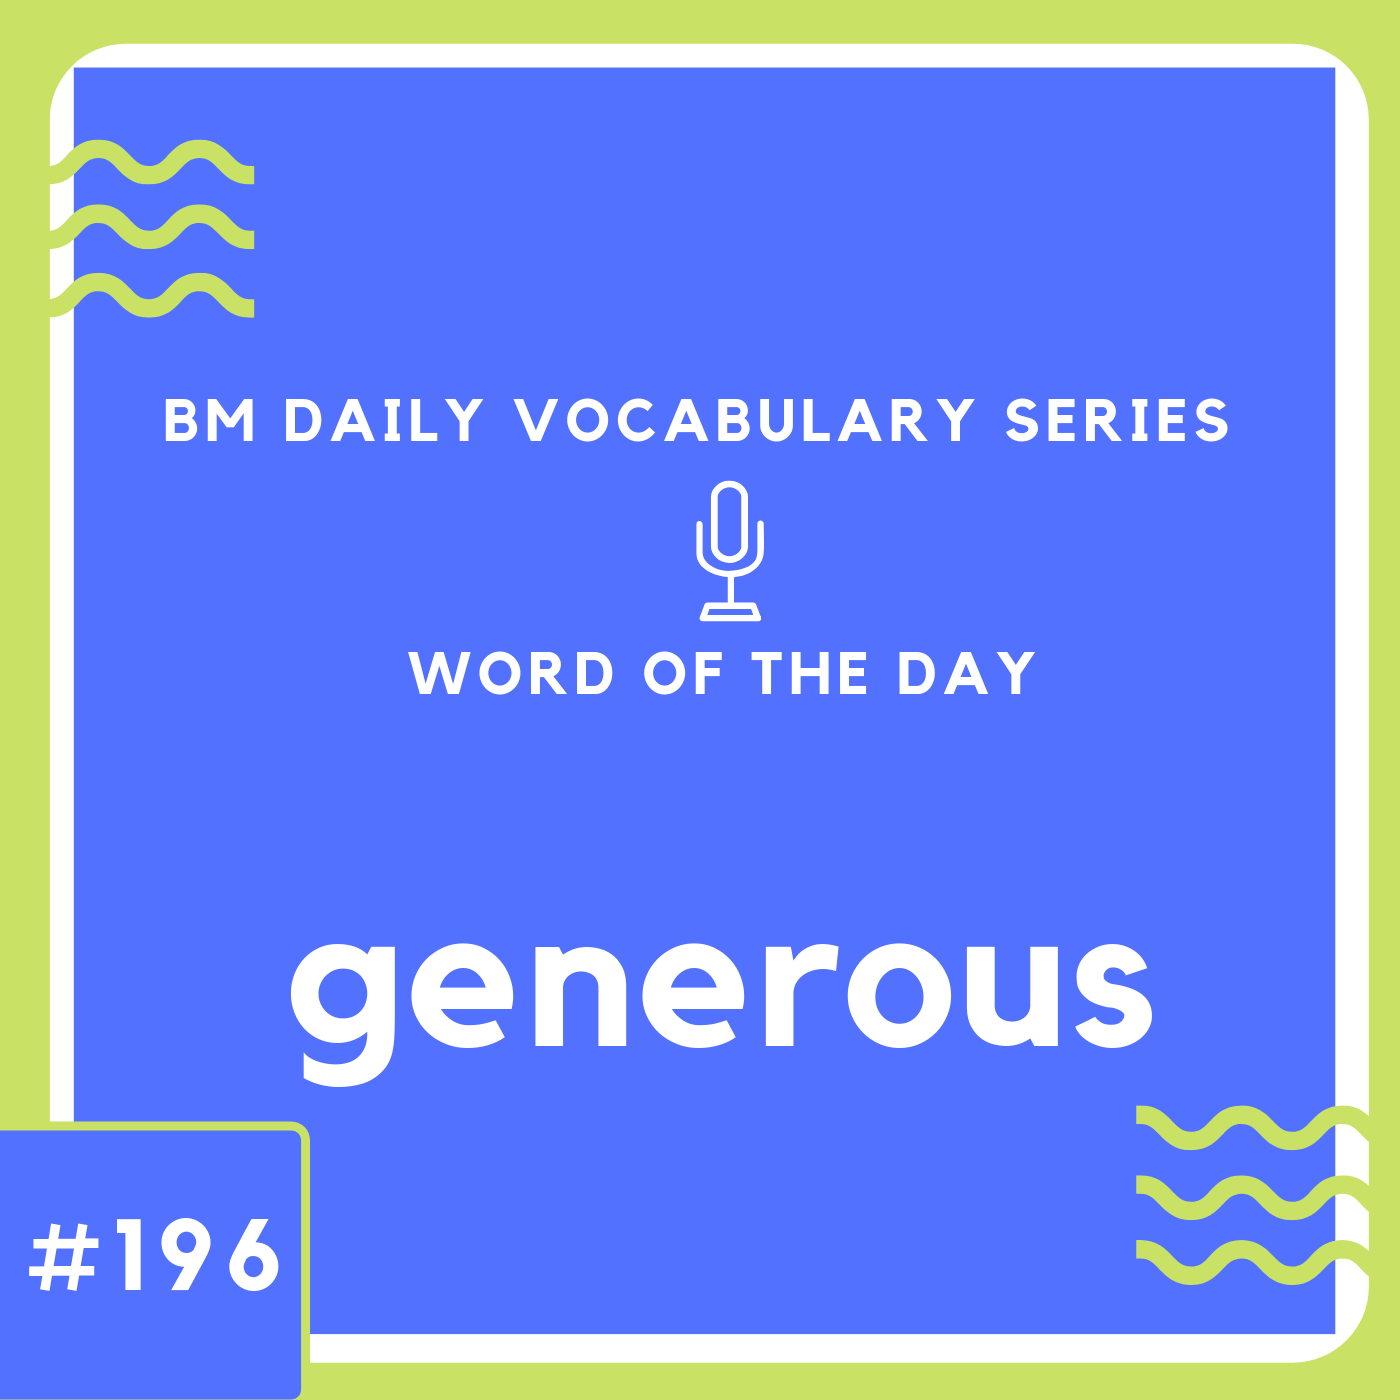 200 BM Daily Vocabulary #196 | generous